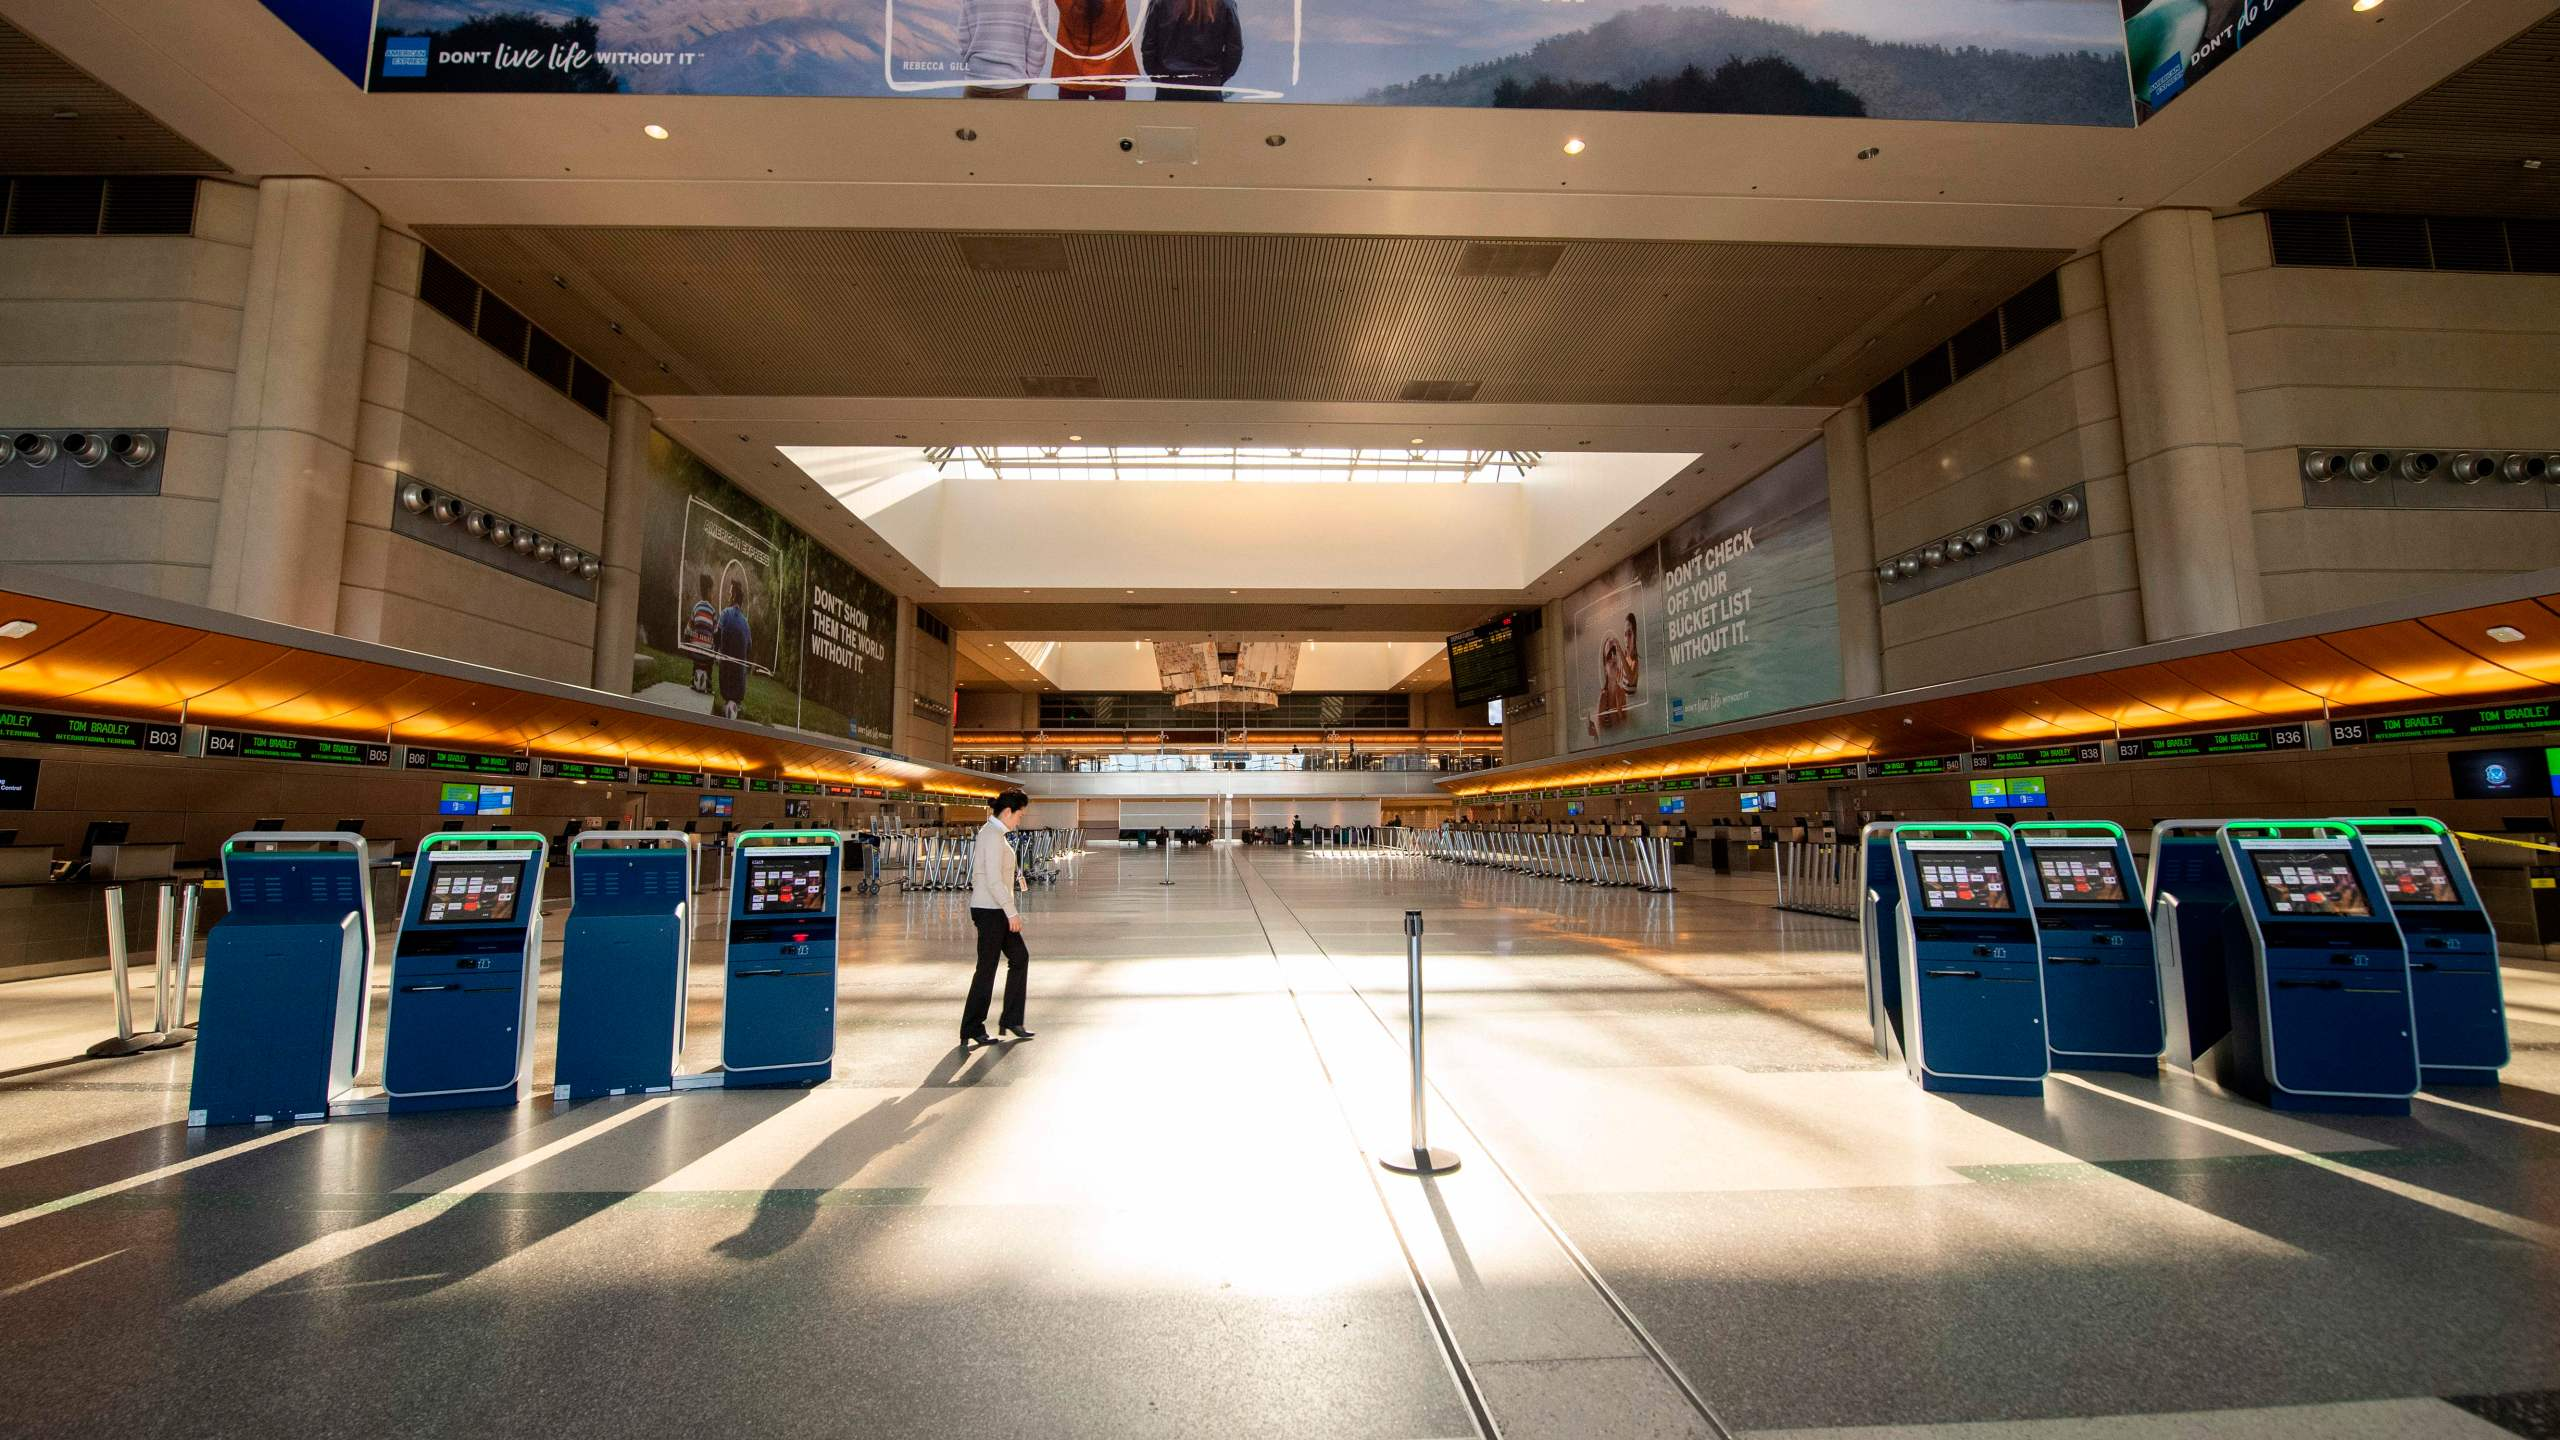 A woman walks through an empty Tom Bradley Terminal at Los Angeles International Airport on April 16, 2020, in Los Angeles. (VALERIE MACON/AFP via Getty Images)